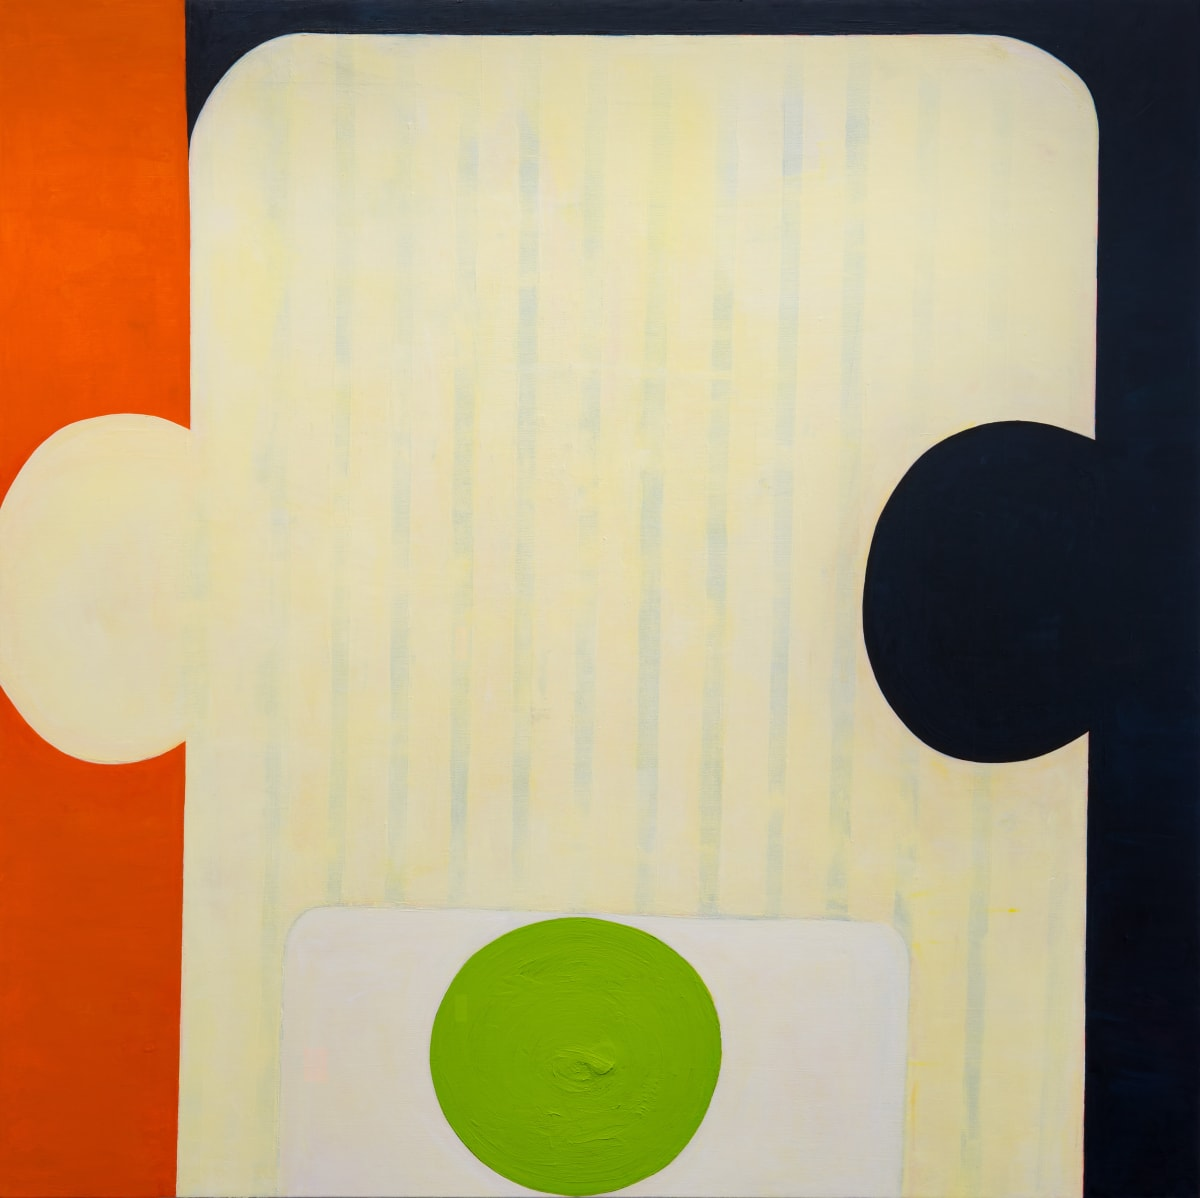 "Fran Shalom's ""Lighten Up"" done with oil on canvas in shades of beige, black, green and orange. The painting appears flat, but there is a clear contrast with warm and cool colors creating an illusion of depth. The bigger shape is like a puzzle piece."